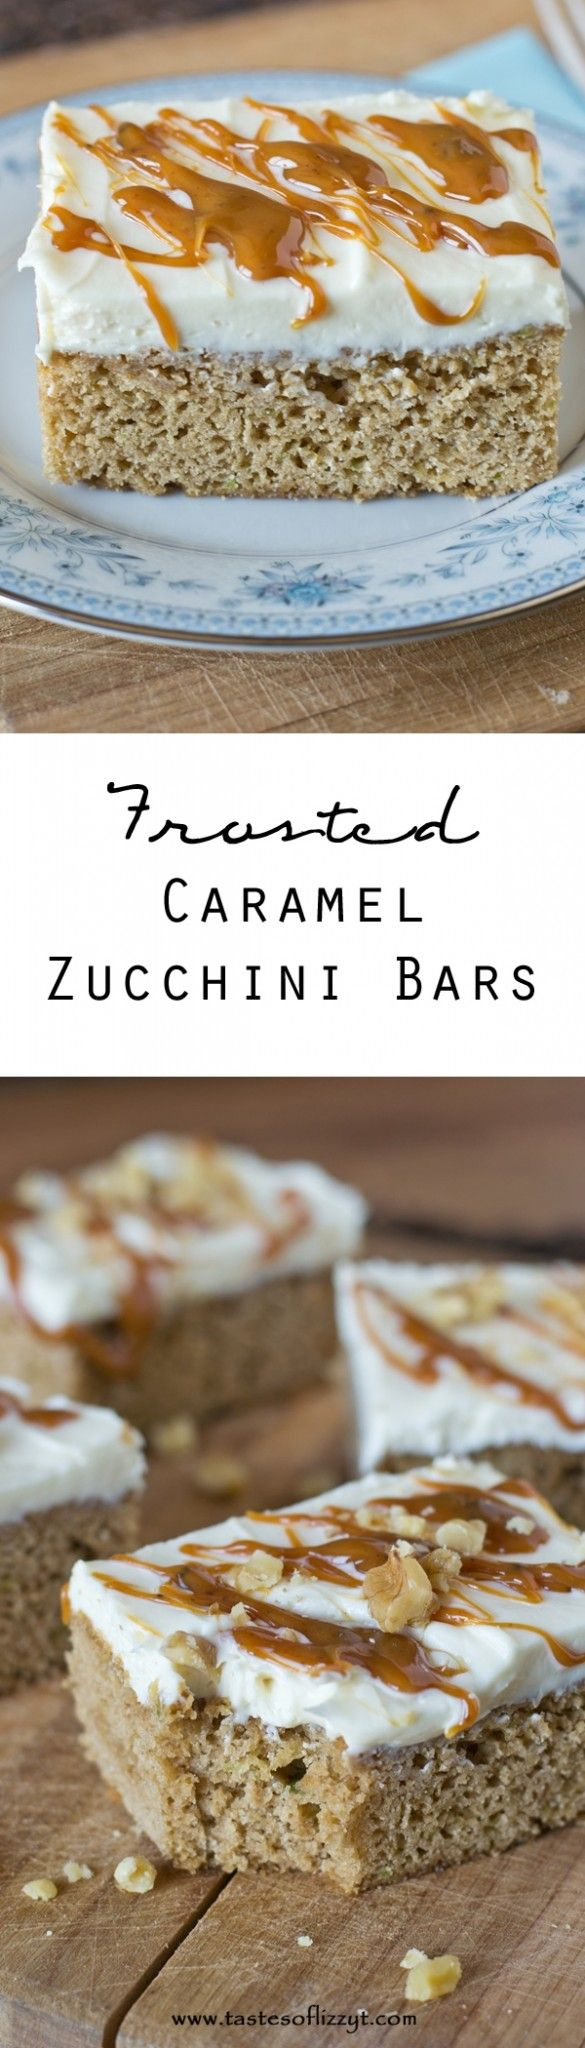 Frosted Caramel Zucchini Bars.  Use up some of your zucchini in these simple 5 ingredient cake mix bars. The caramel cake mix matches perfectly with the cream cheese frosting.